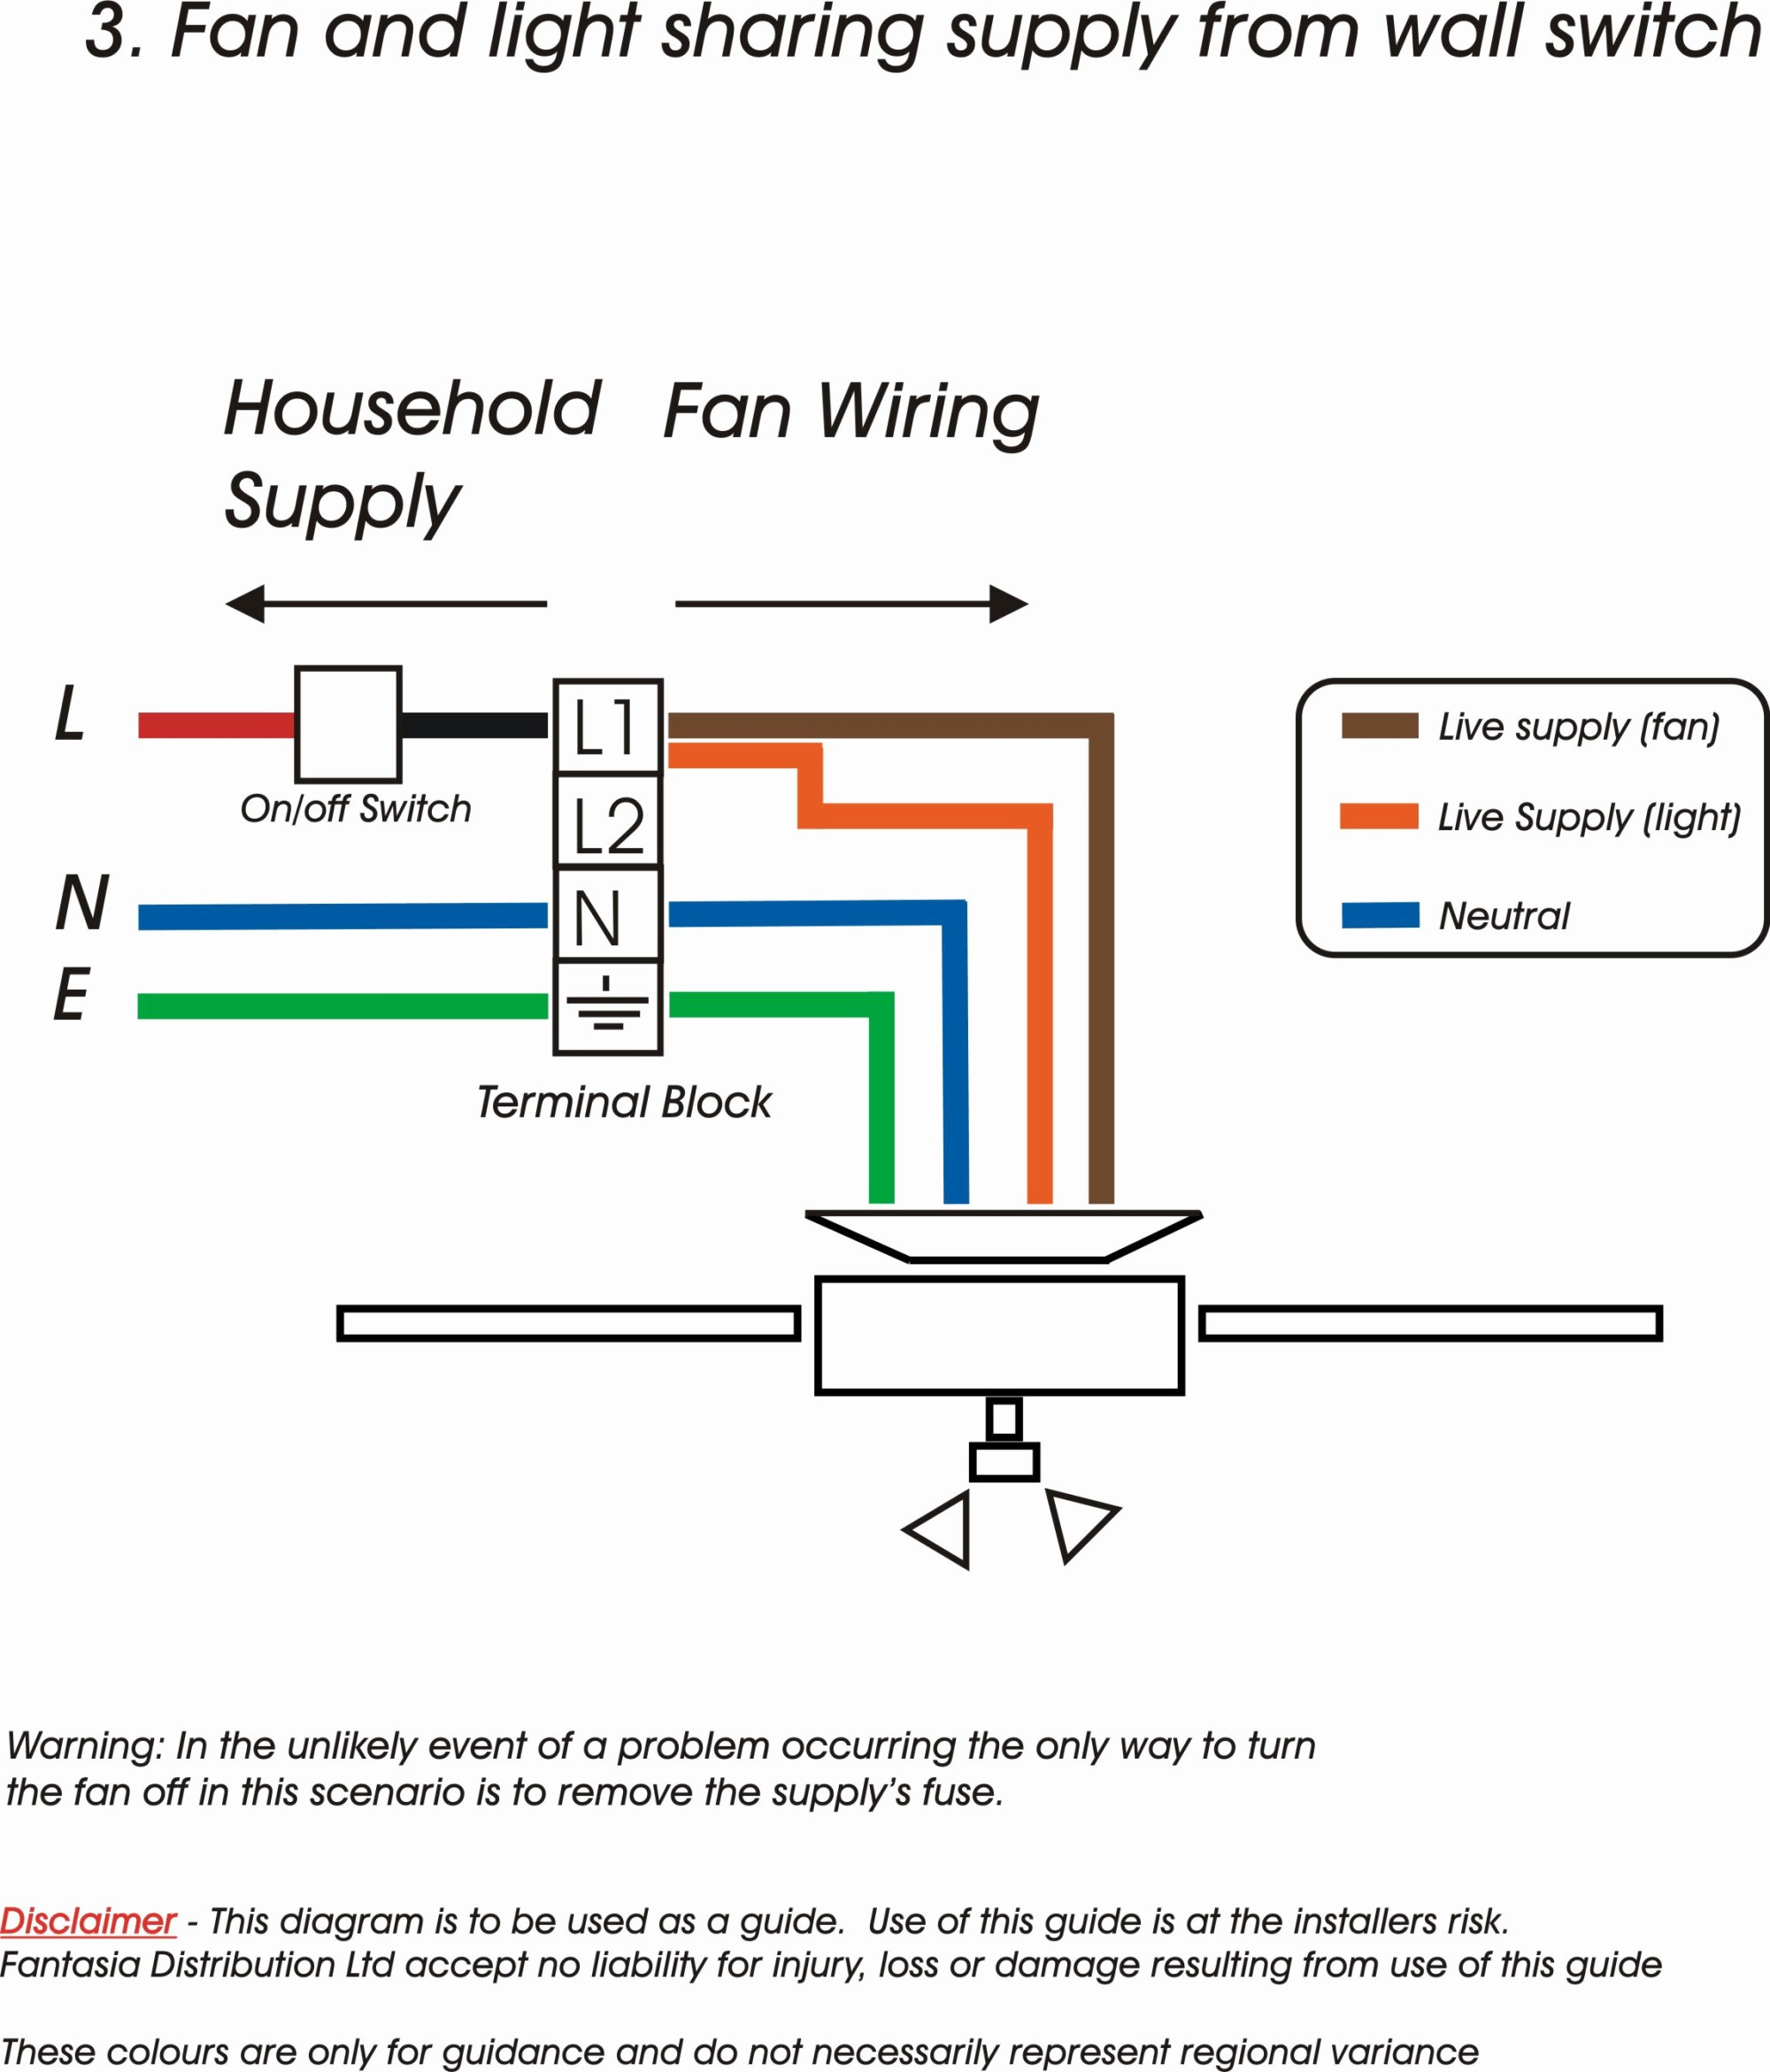 hight resolution of harbor breeze ceiling fan remote wiring diagram gallery wiring harbor breeze ceiling fan remote wiring diagram